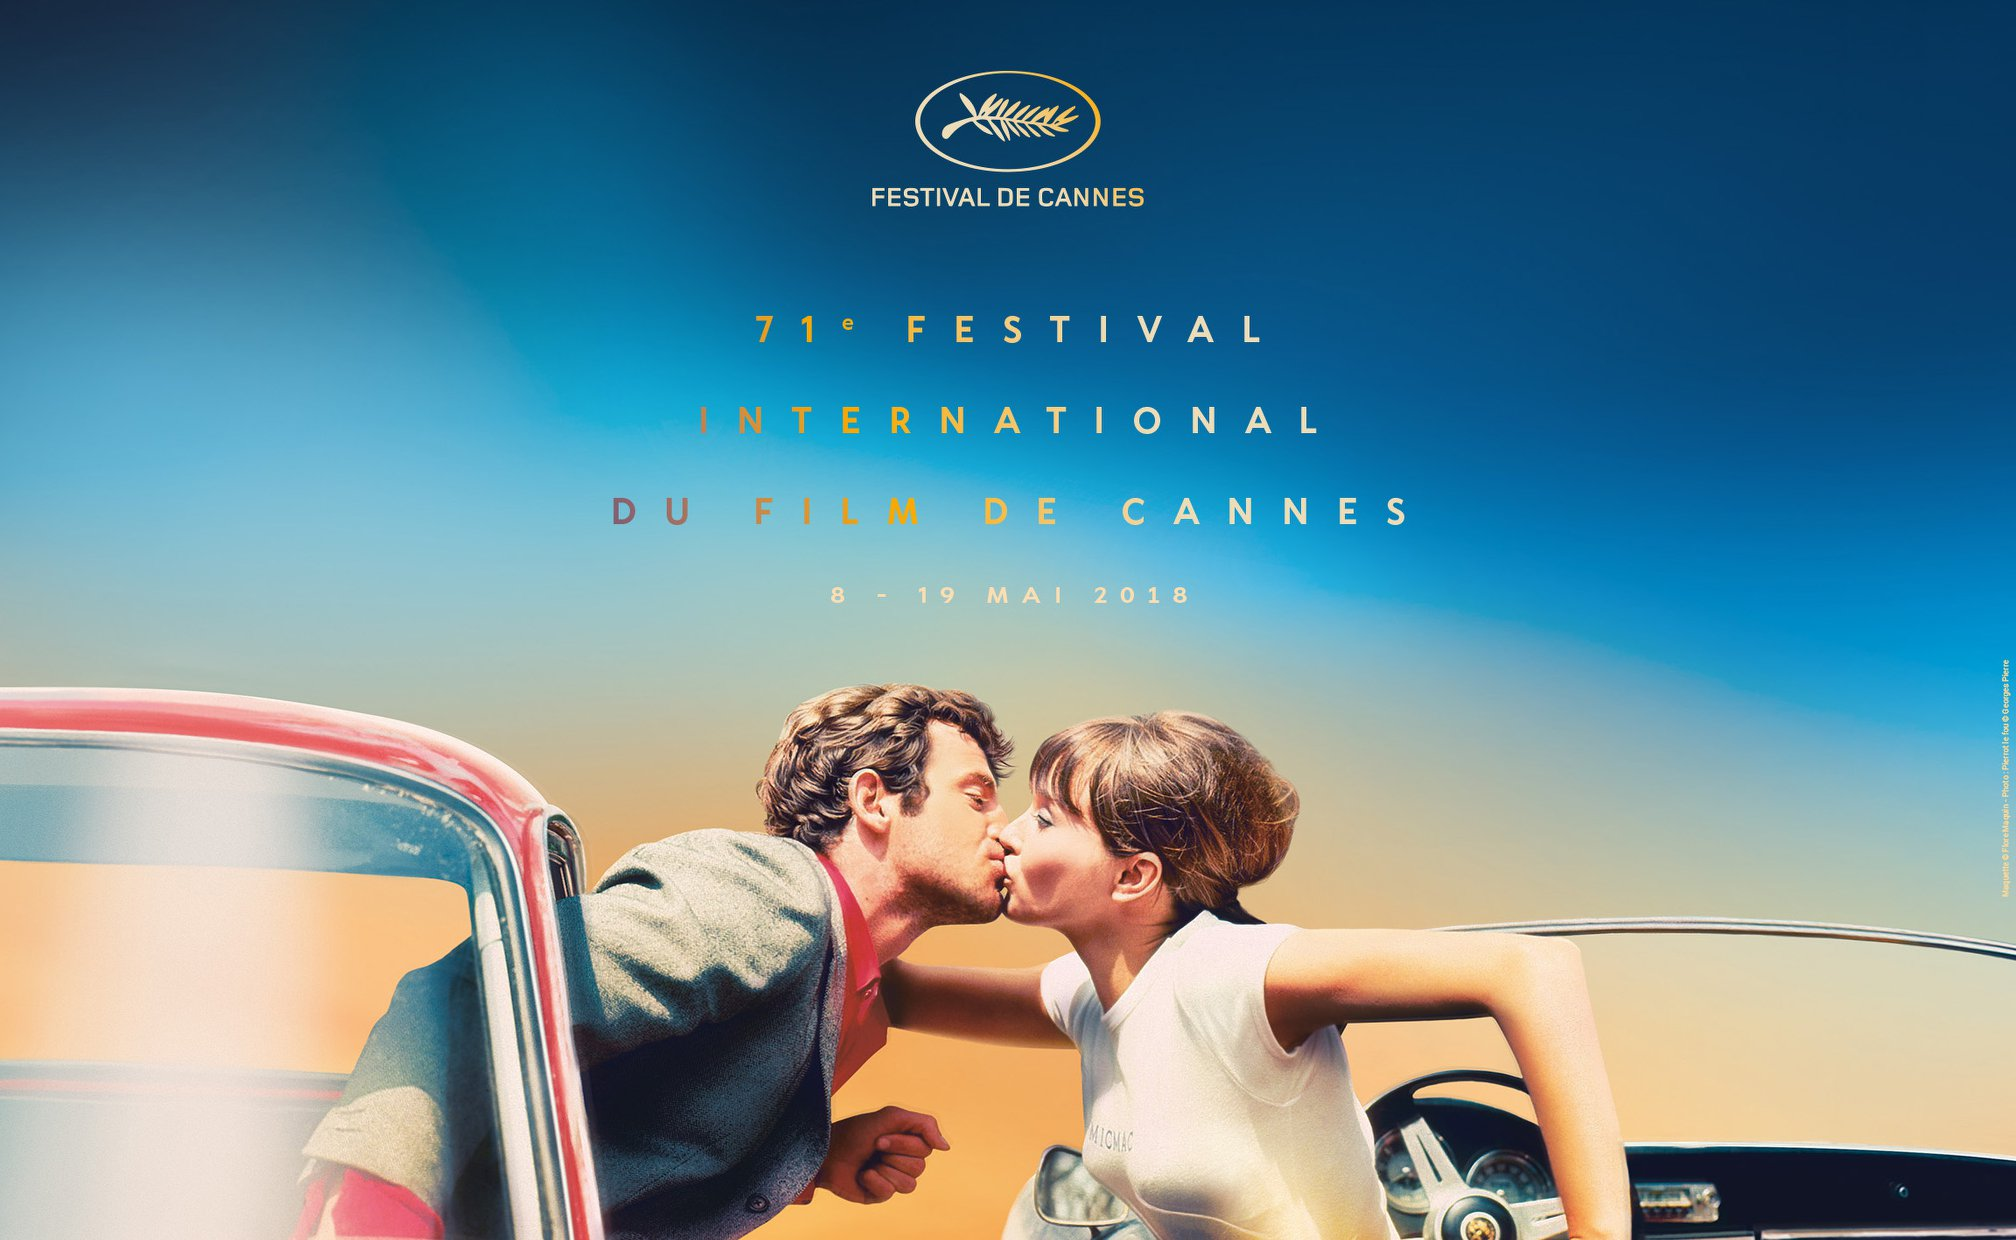 Photo/ Facebook@festivaldecannes